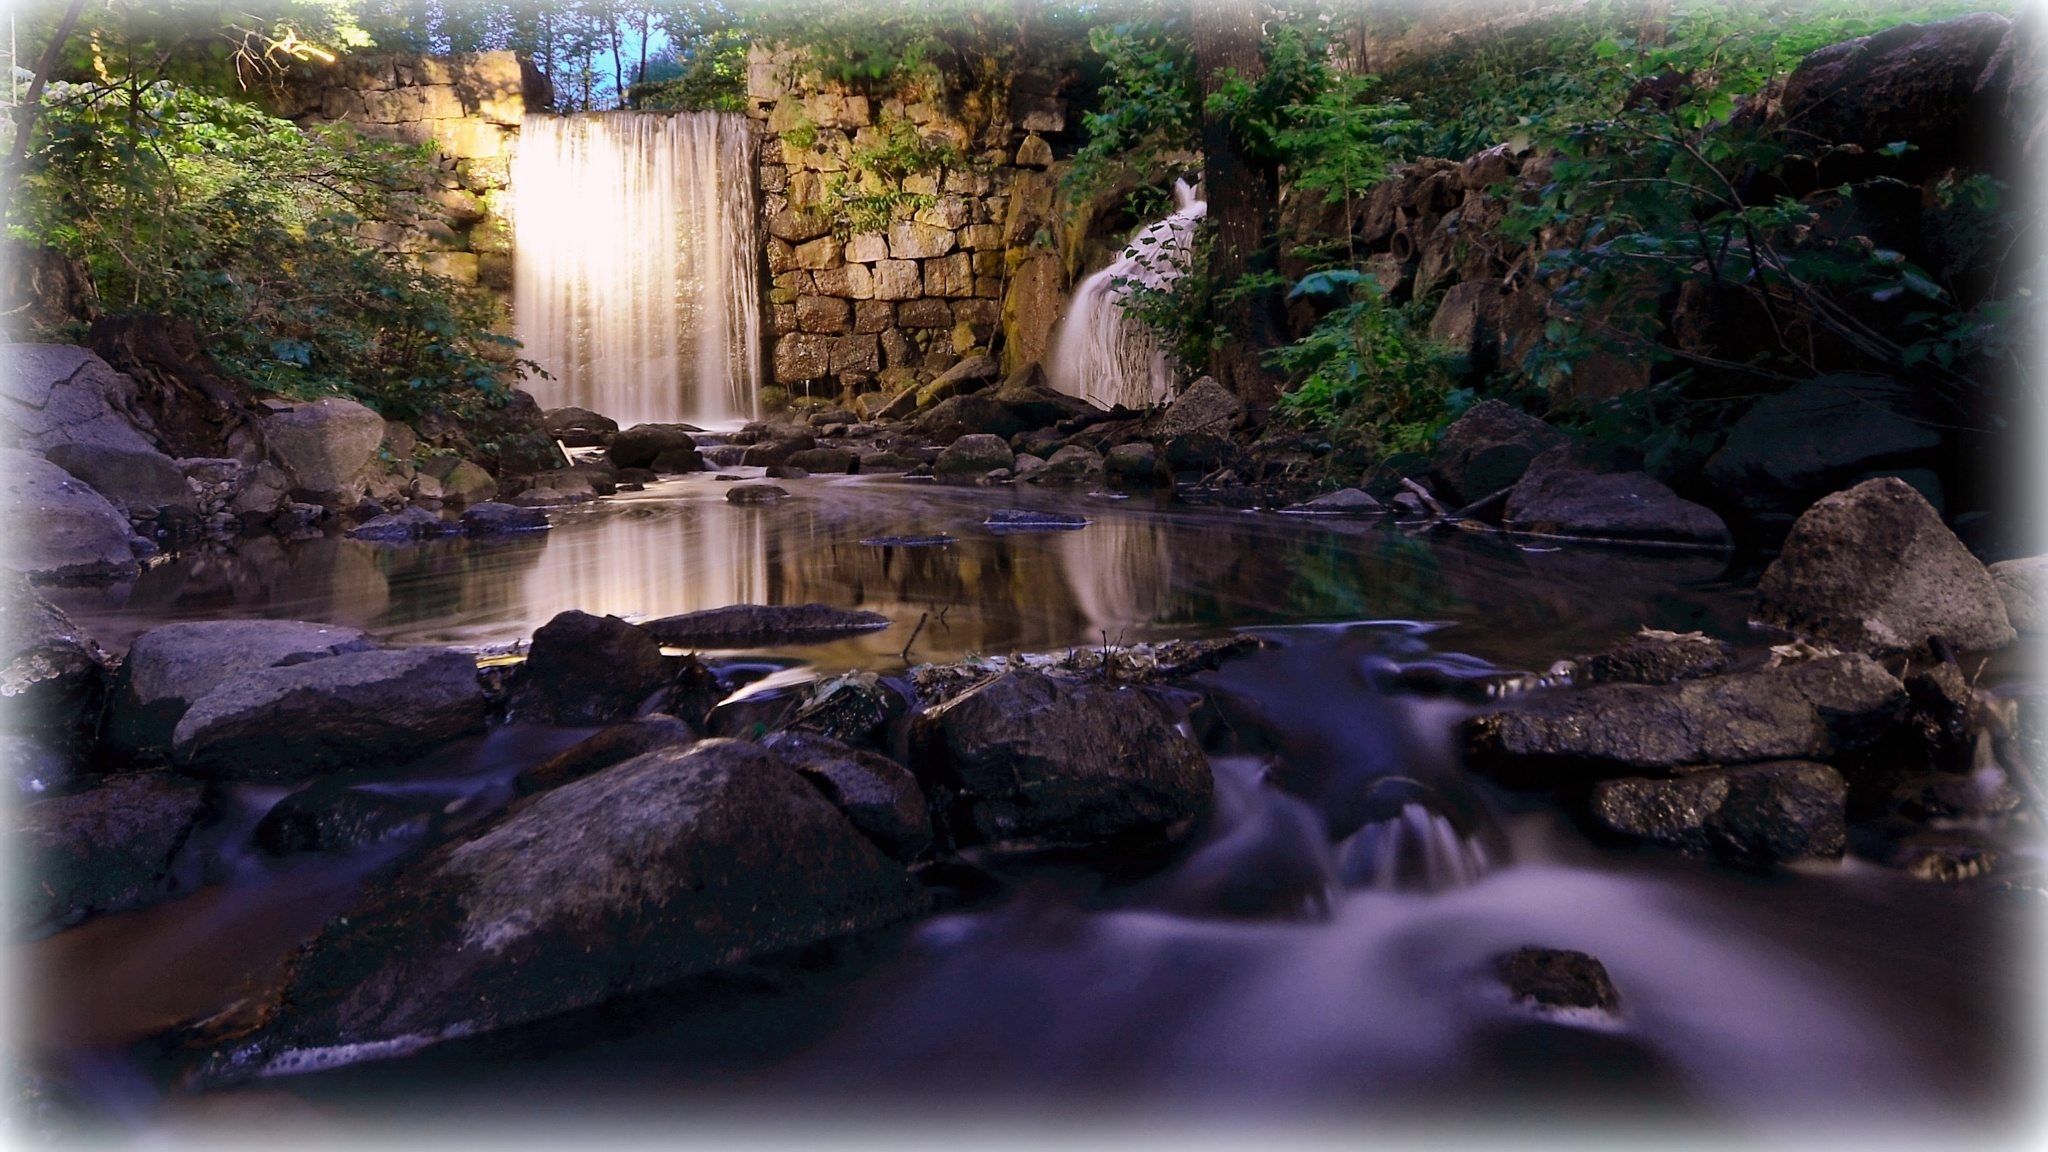 A waterfall in Linkoping 2 by rollepersson